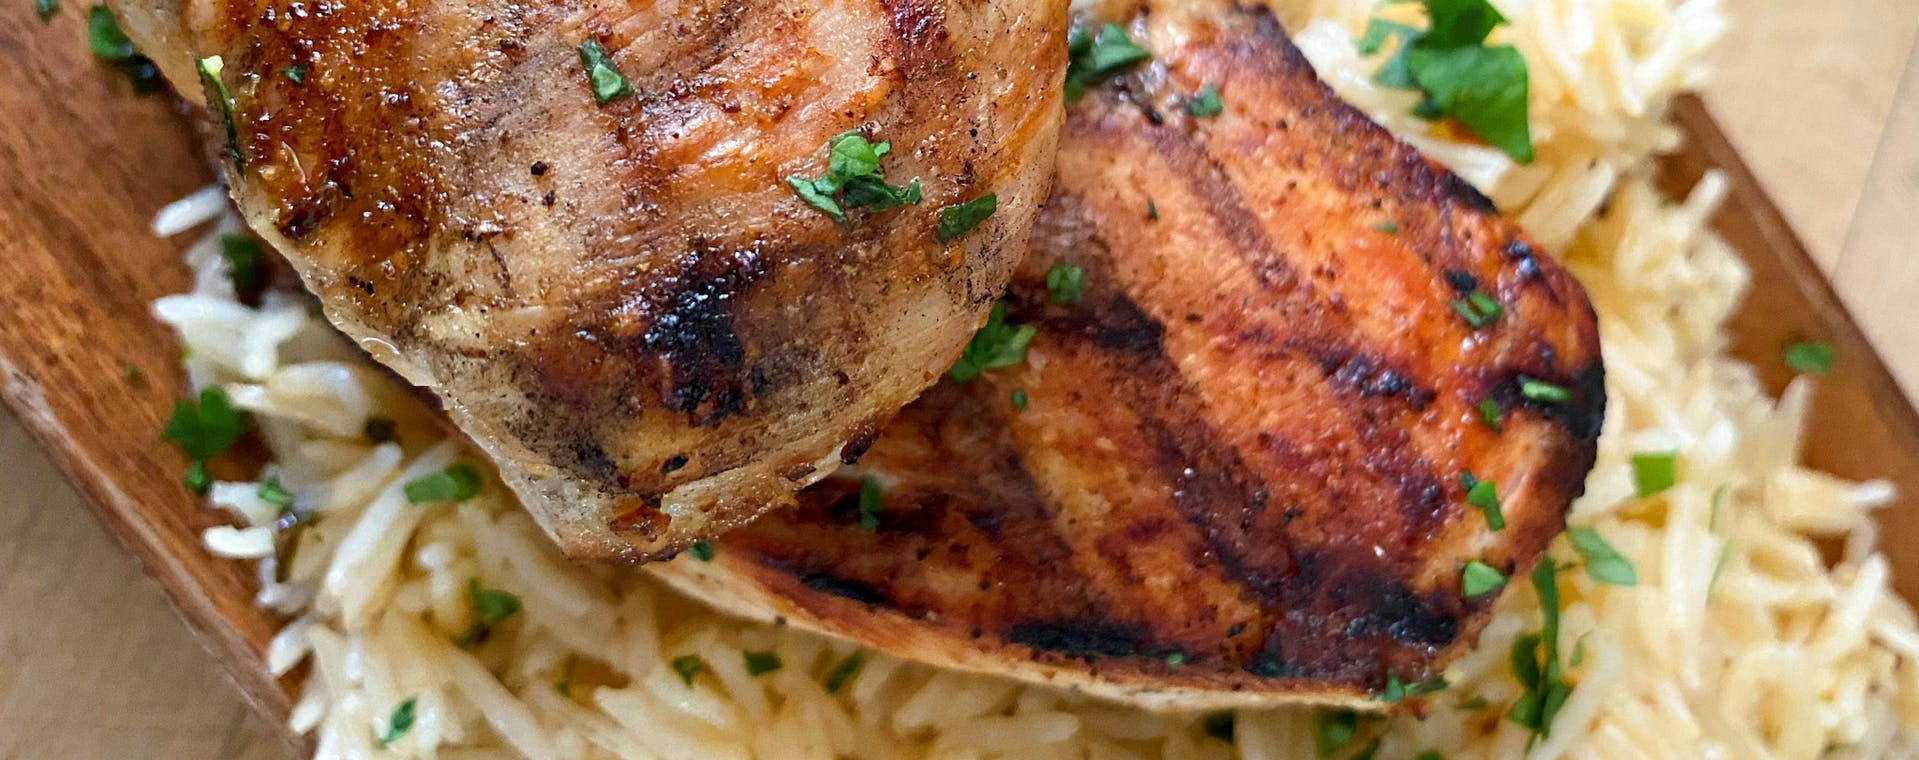 Grilled chicken and rice made with Epicurean Chili Lime flavored butter